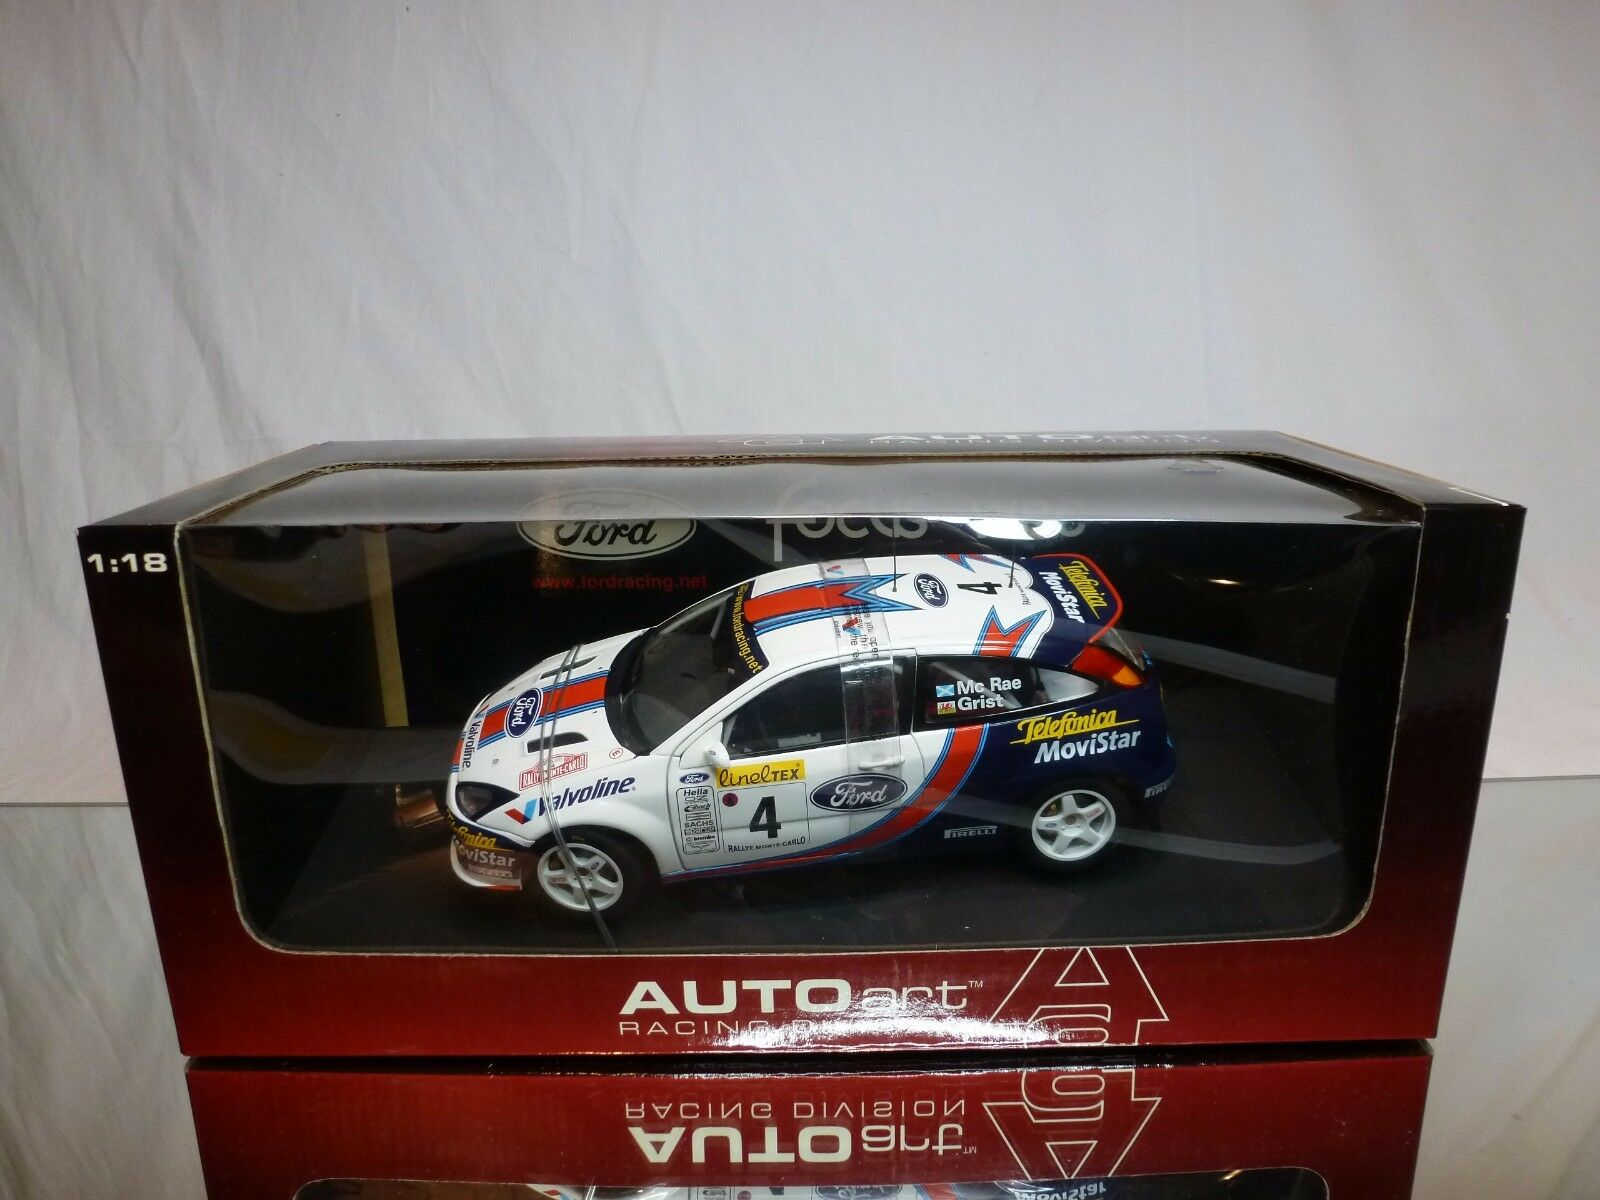 AUTOART 80113 FORD FOCUS WRC 2001 - Mc RAE 1 18 - BOXED + TRANSPORT STRAPS CAR